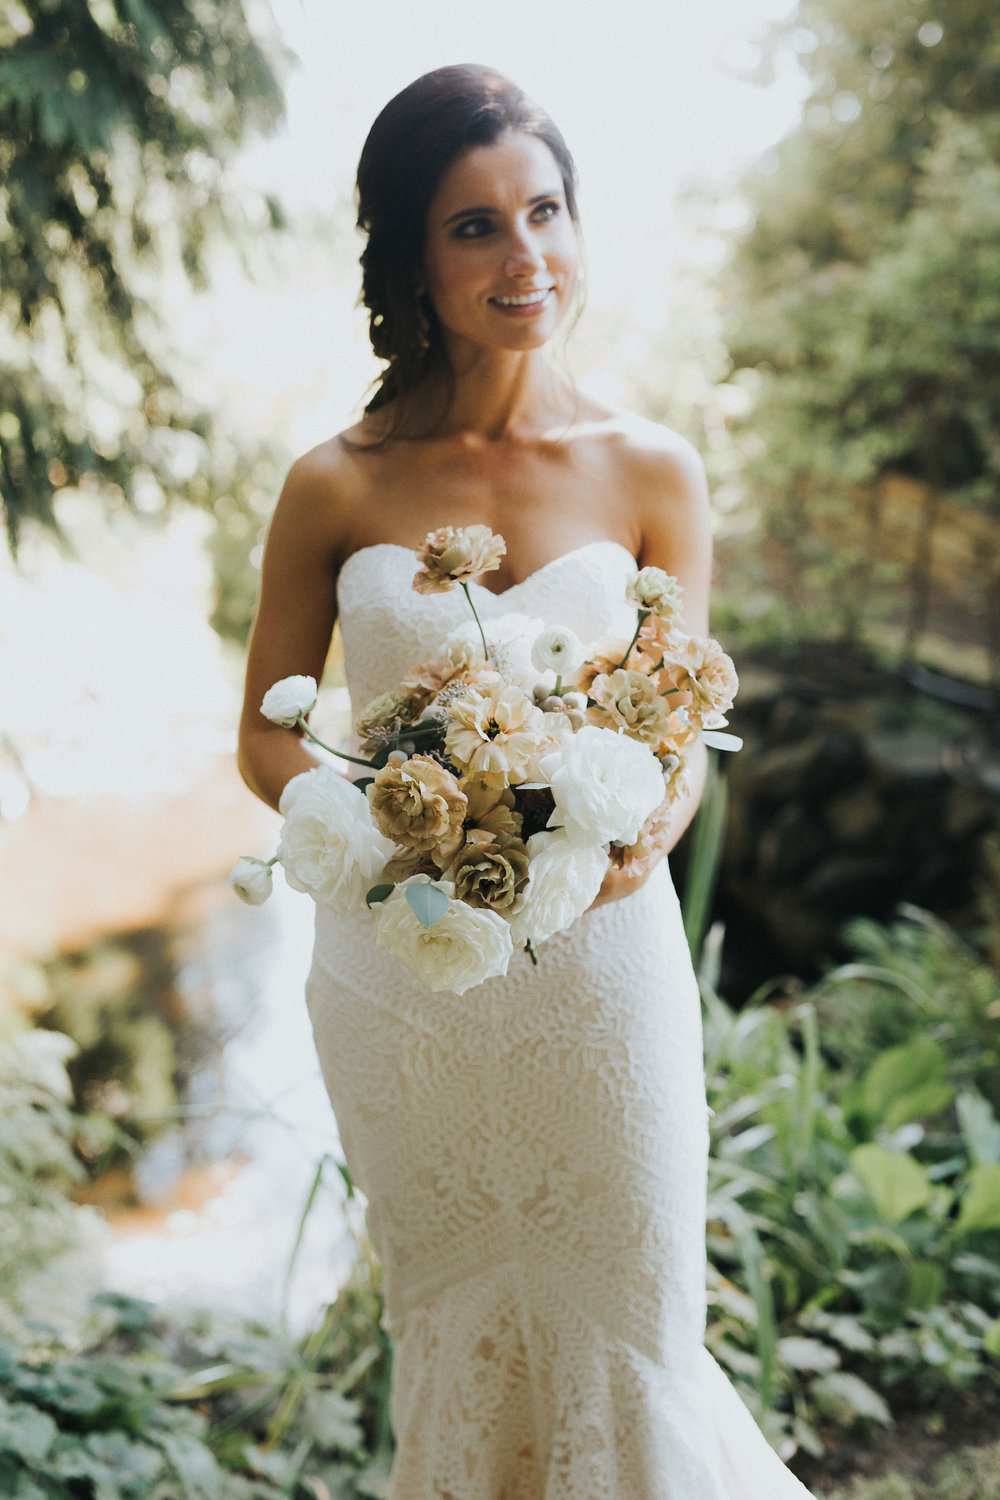 Wild Bloom Floral - Rachel Birkhofer Photography - Jessica and Phil - Real Wedding - Seattle 23.jpeg